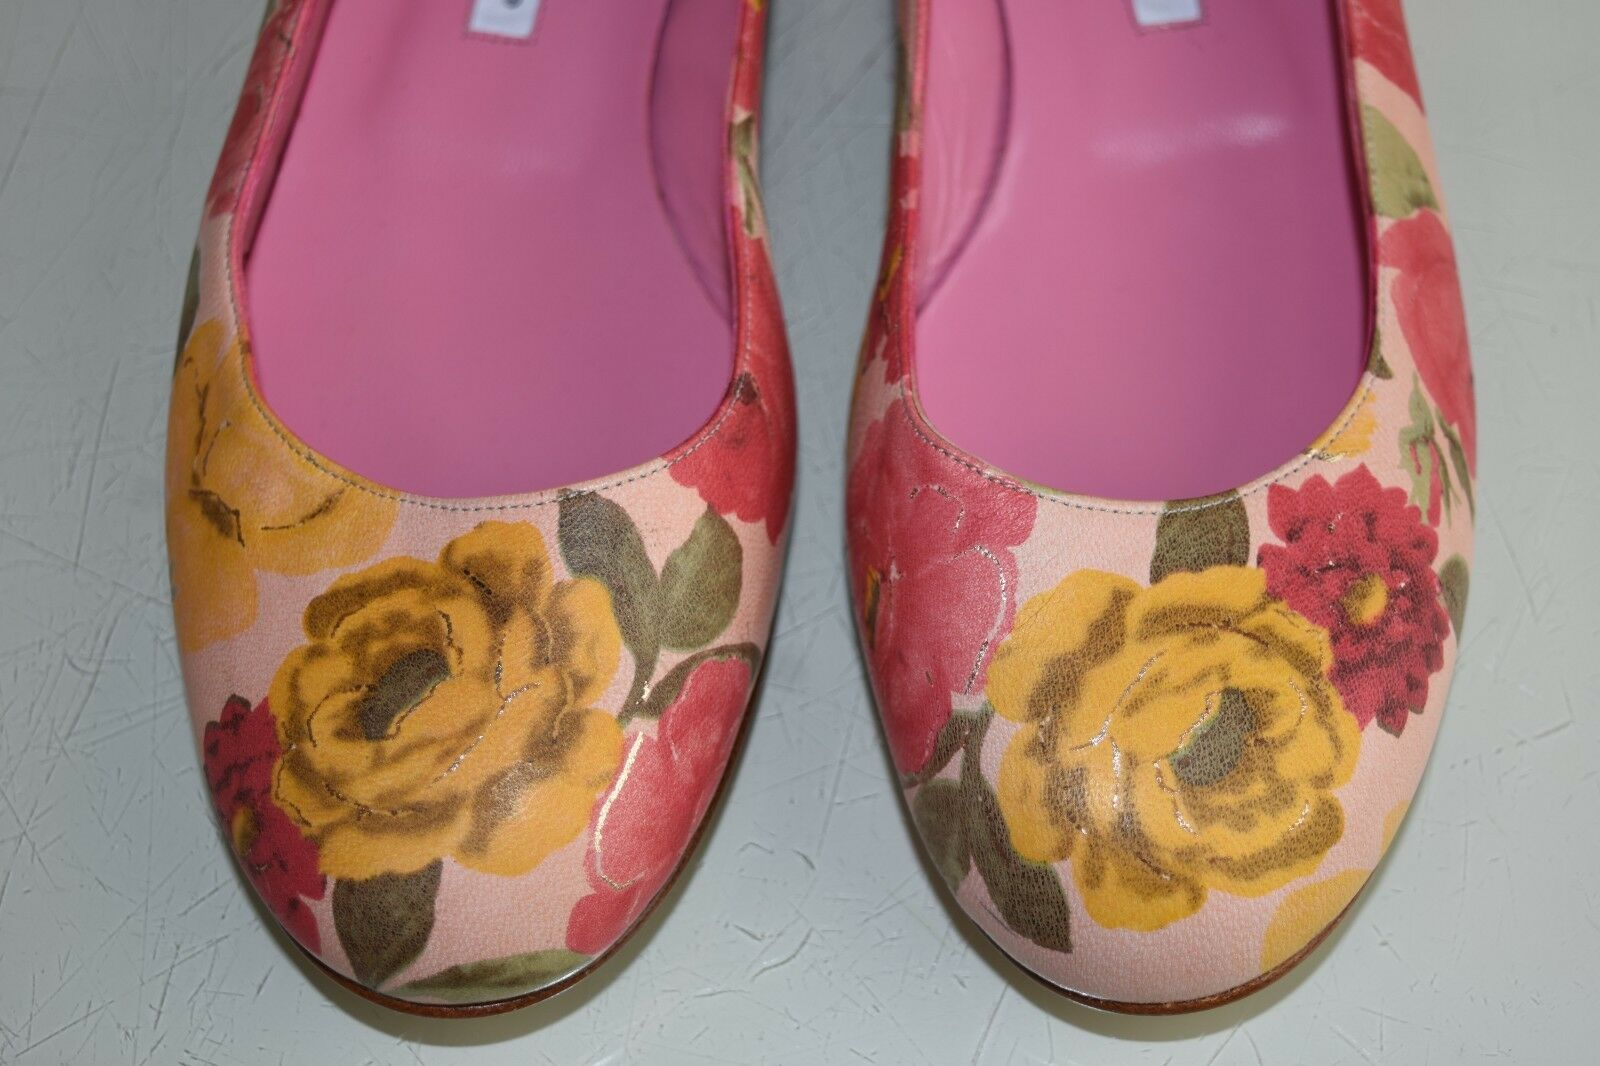 New Manolo Blahnik Flats Leather rose Flowers Round Round Round Toe Nude Floral chaussures 40.5 2459c4